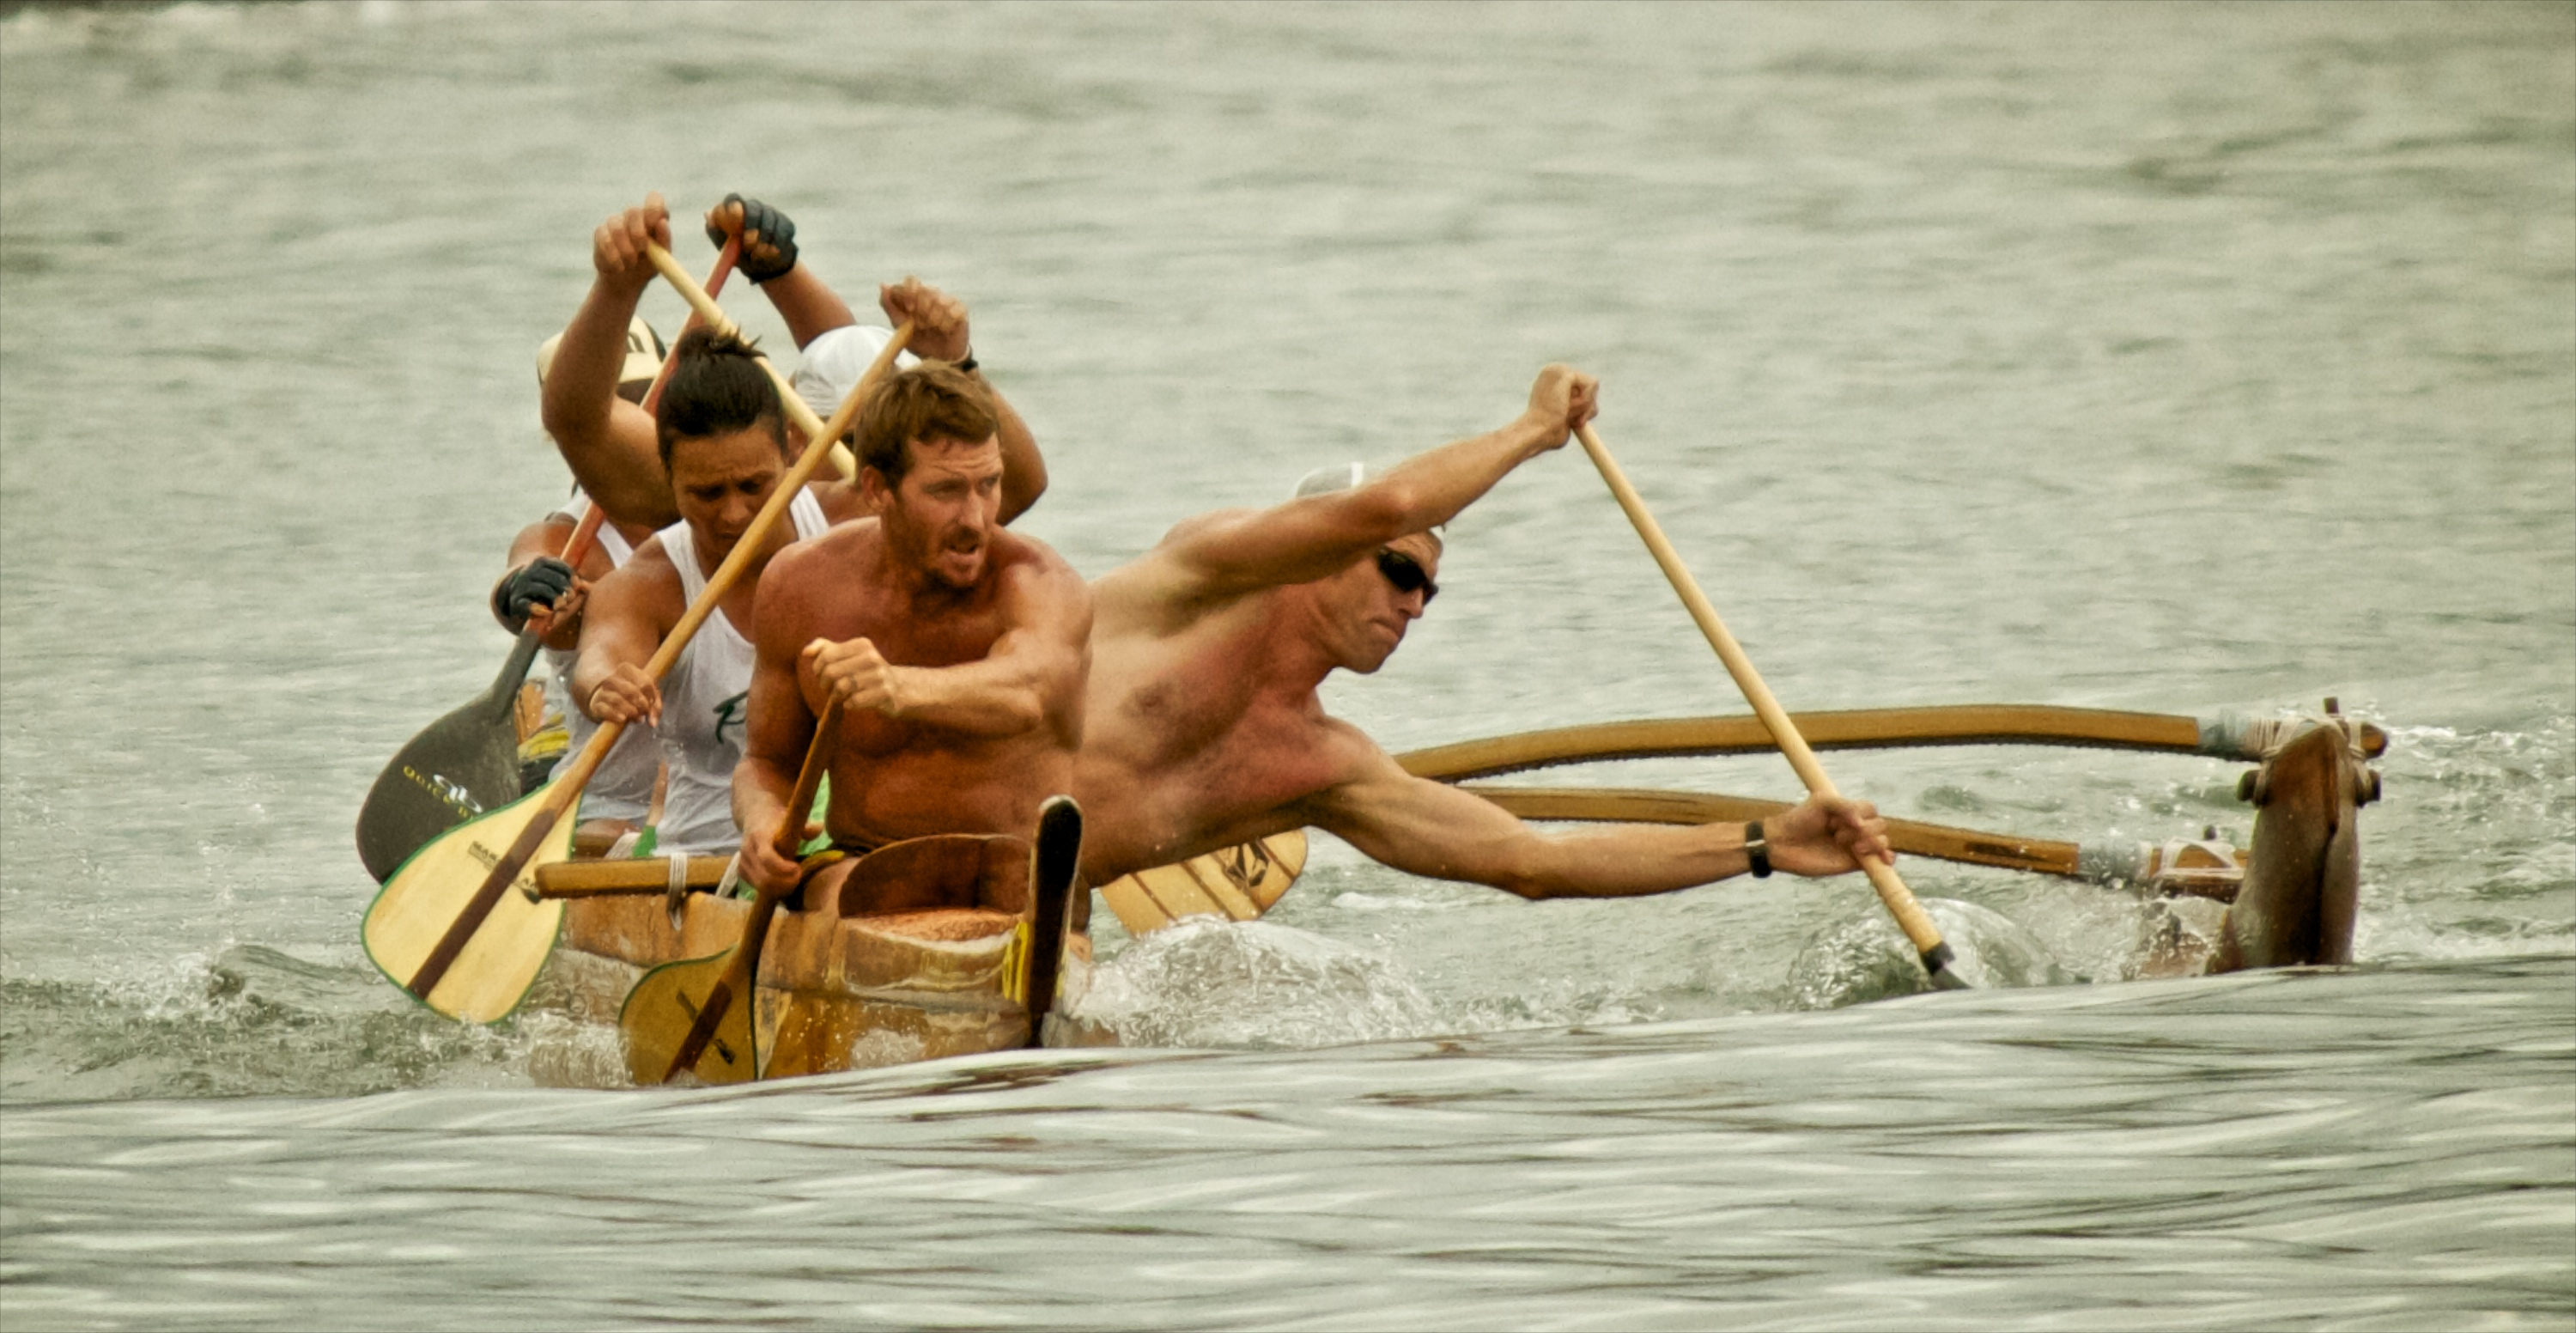 Outrigger canoe racing results from the Moku o Hawaii Puna Canoe Club regatta held at Hilo Bay Saturday (July 3).